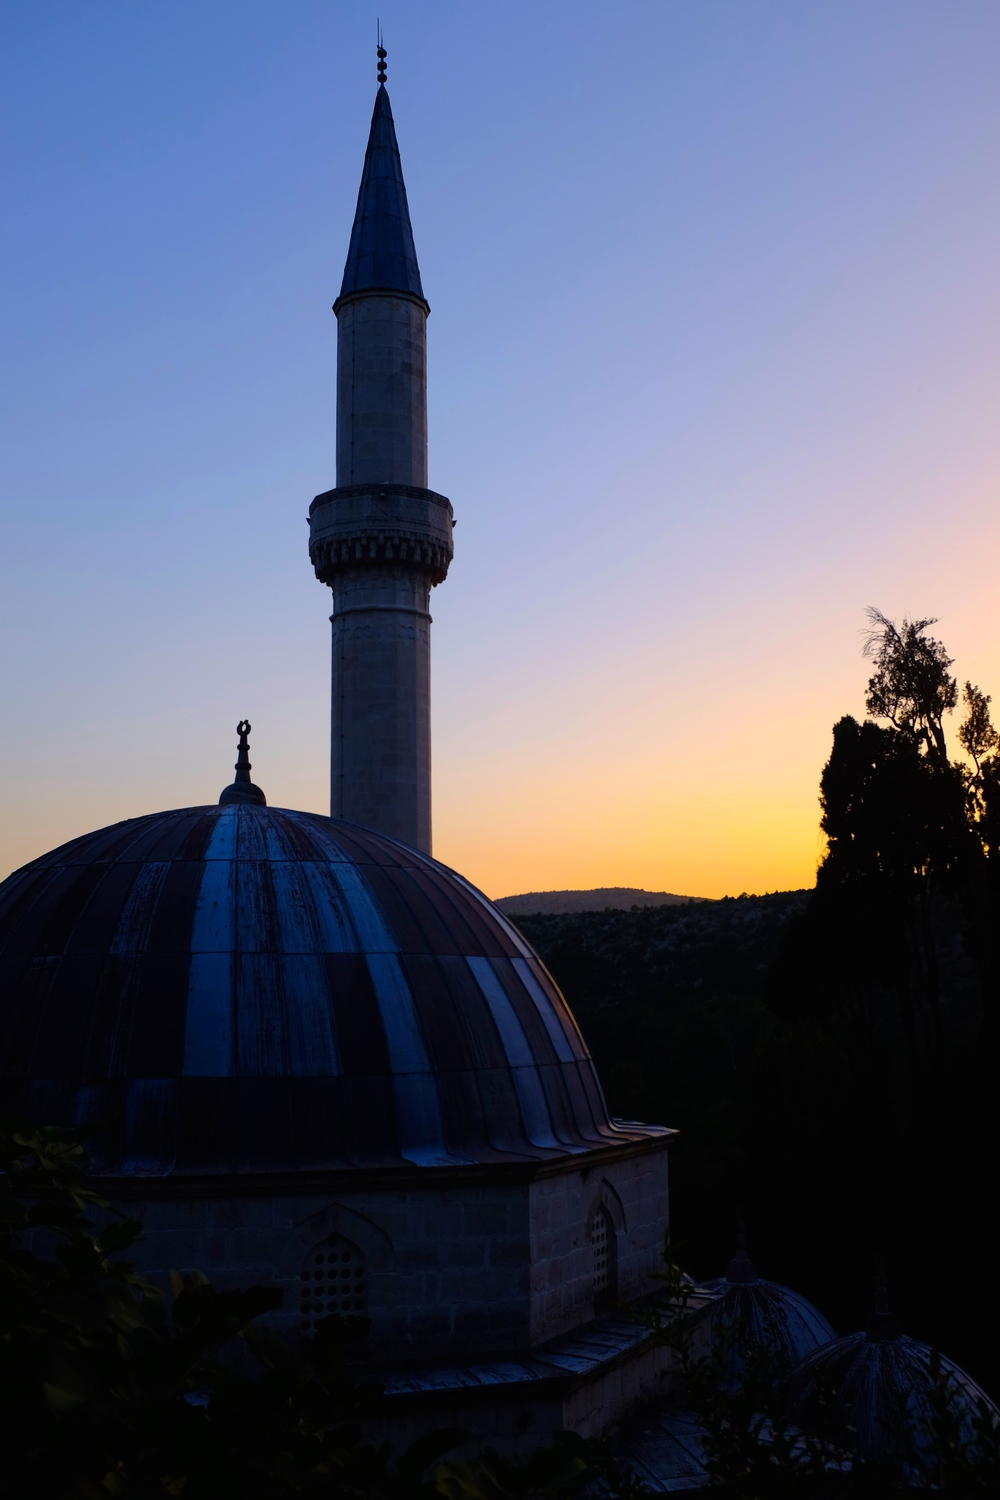 Mosque at Dusk - A Pilot's Daughter